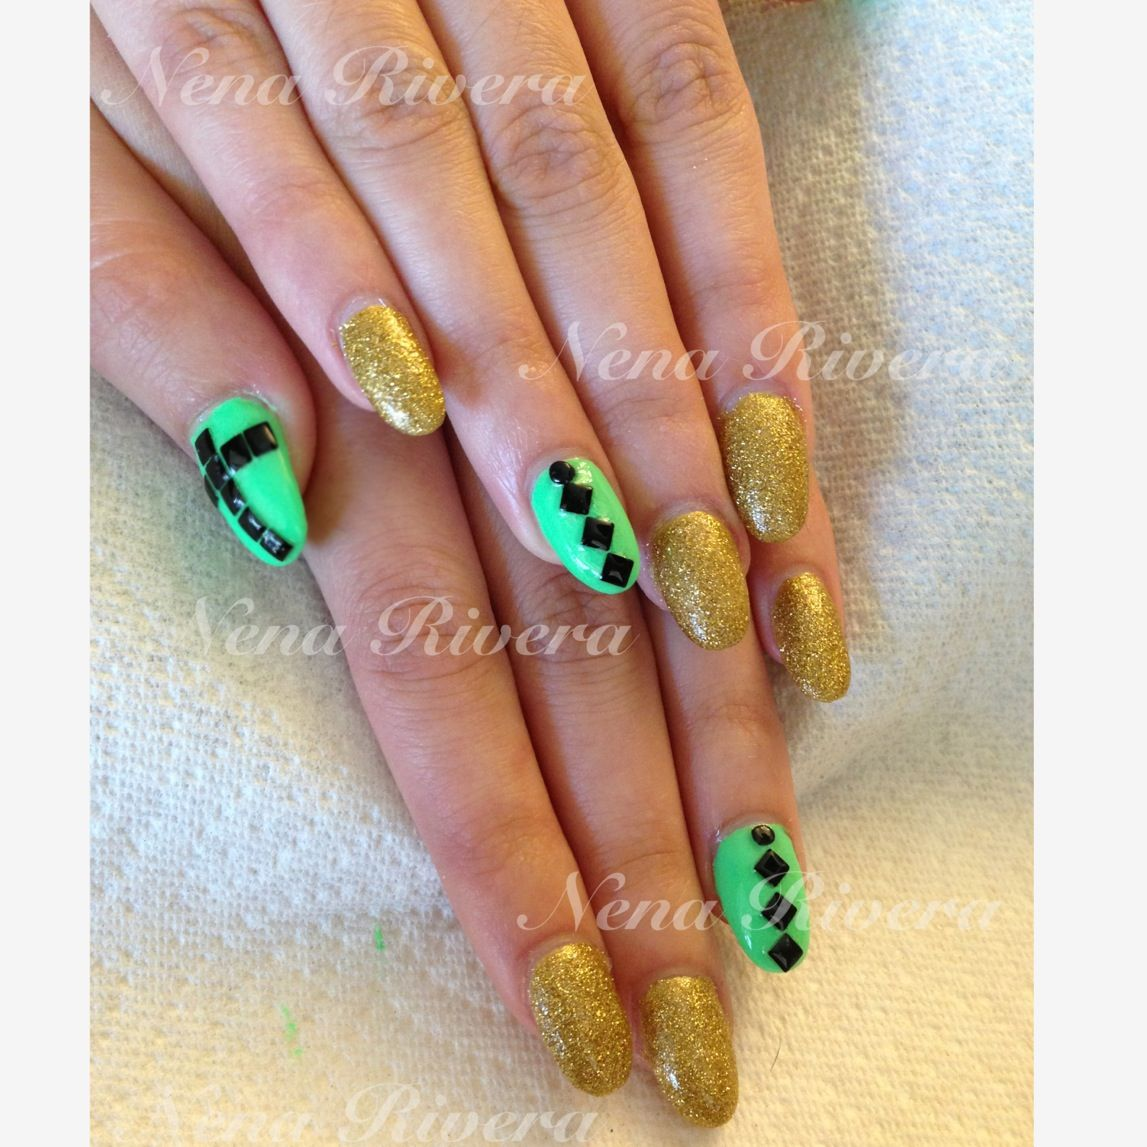 Fashion nails | Nails by me | Pinterest